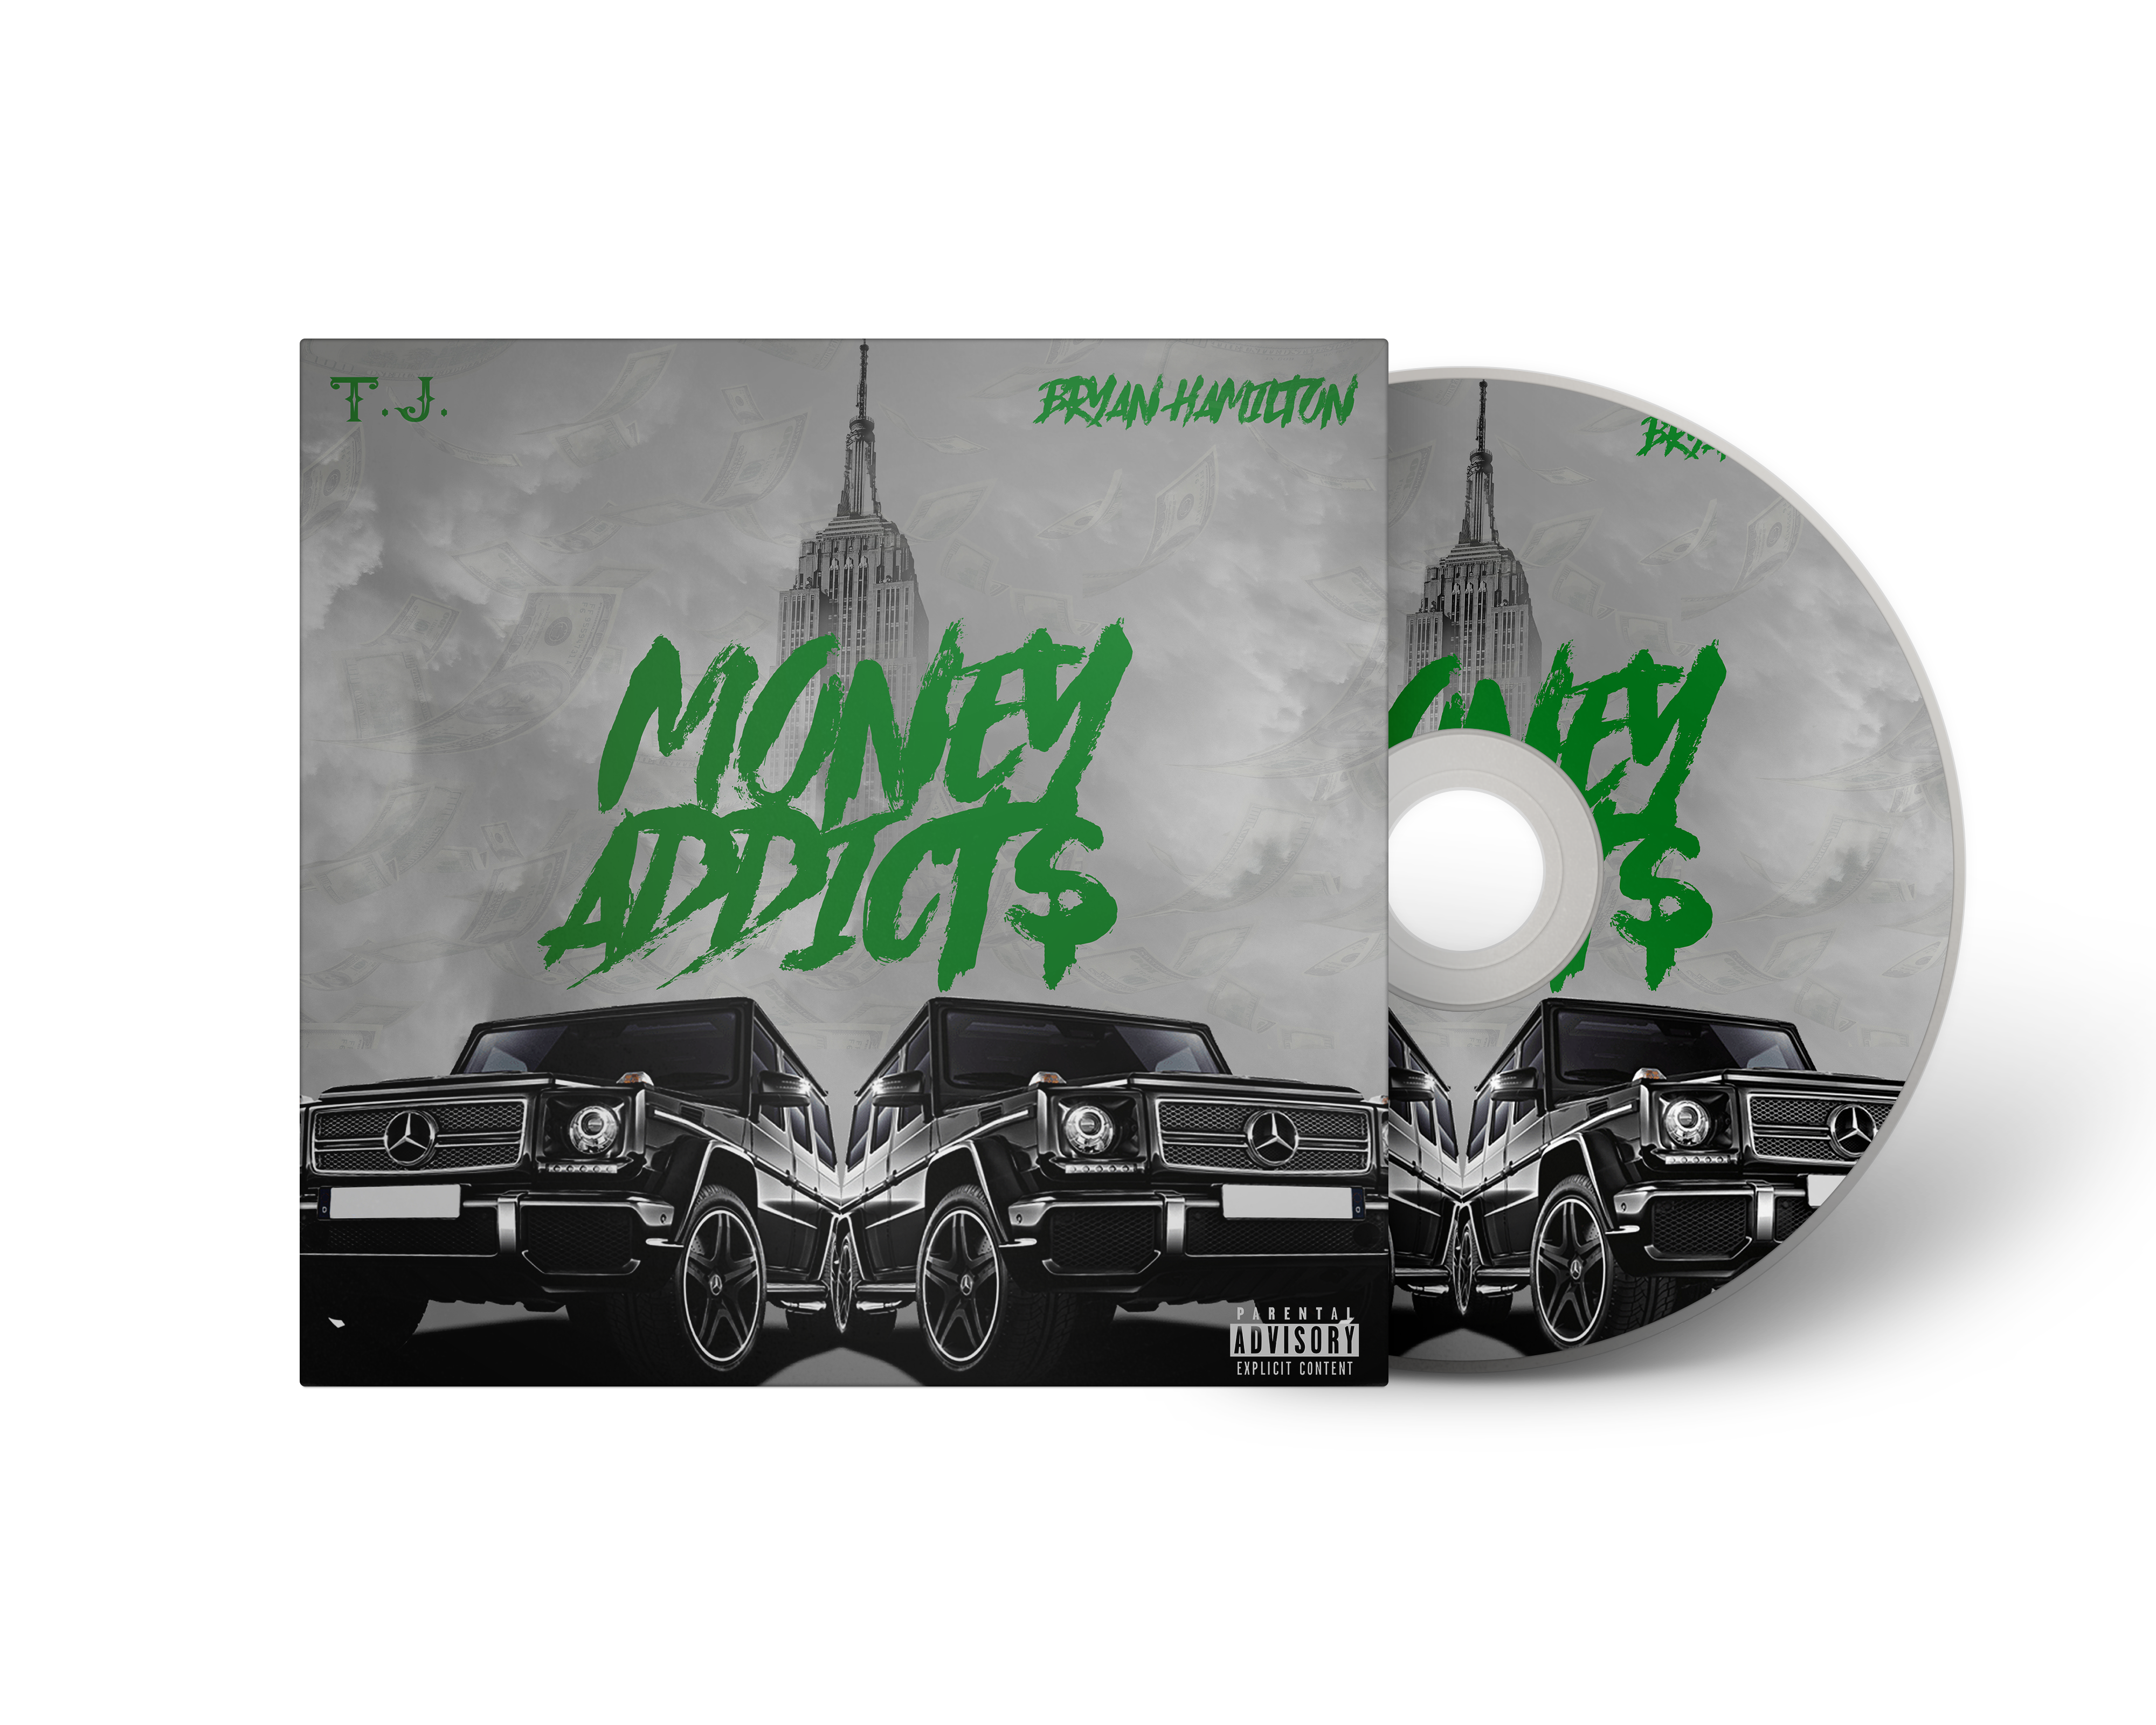 T.J. - Money Addict$